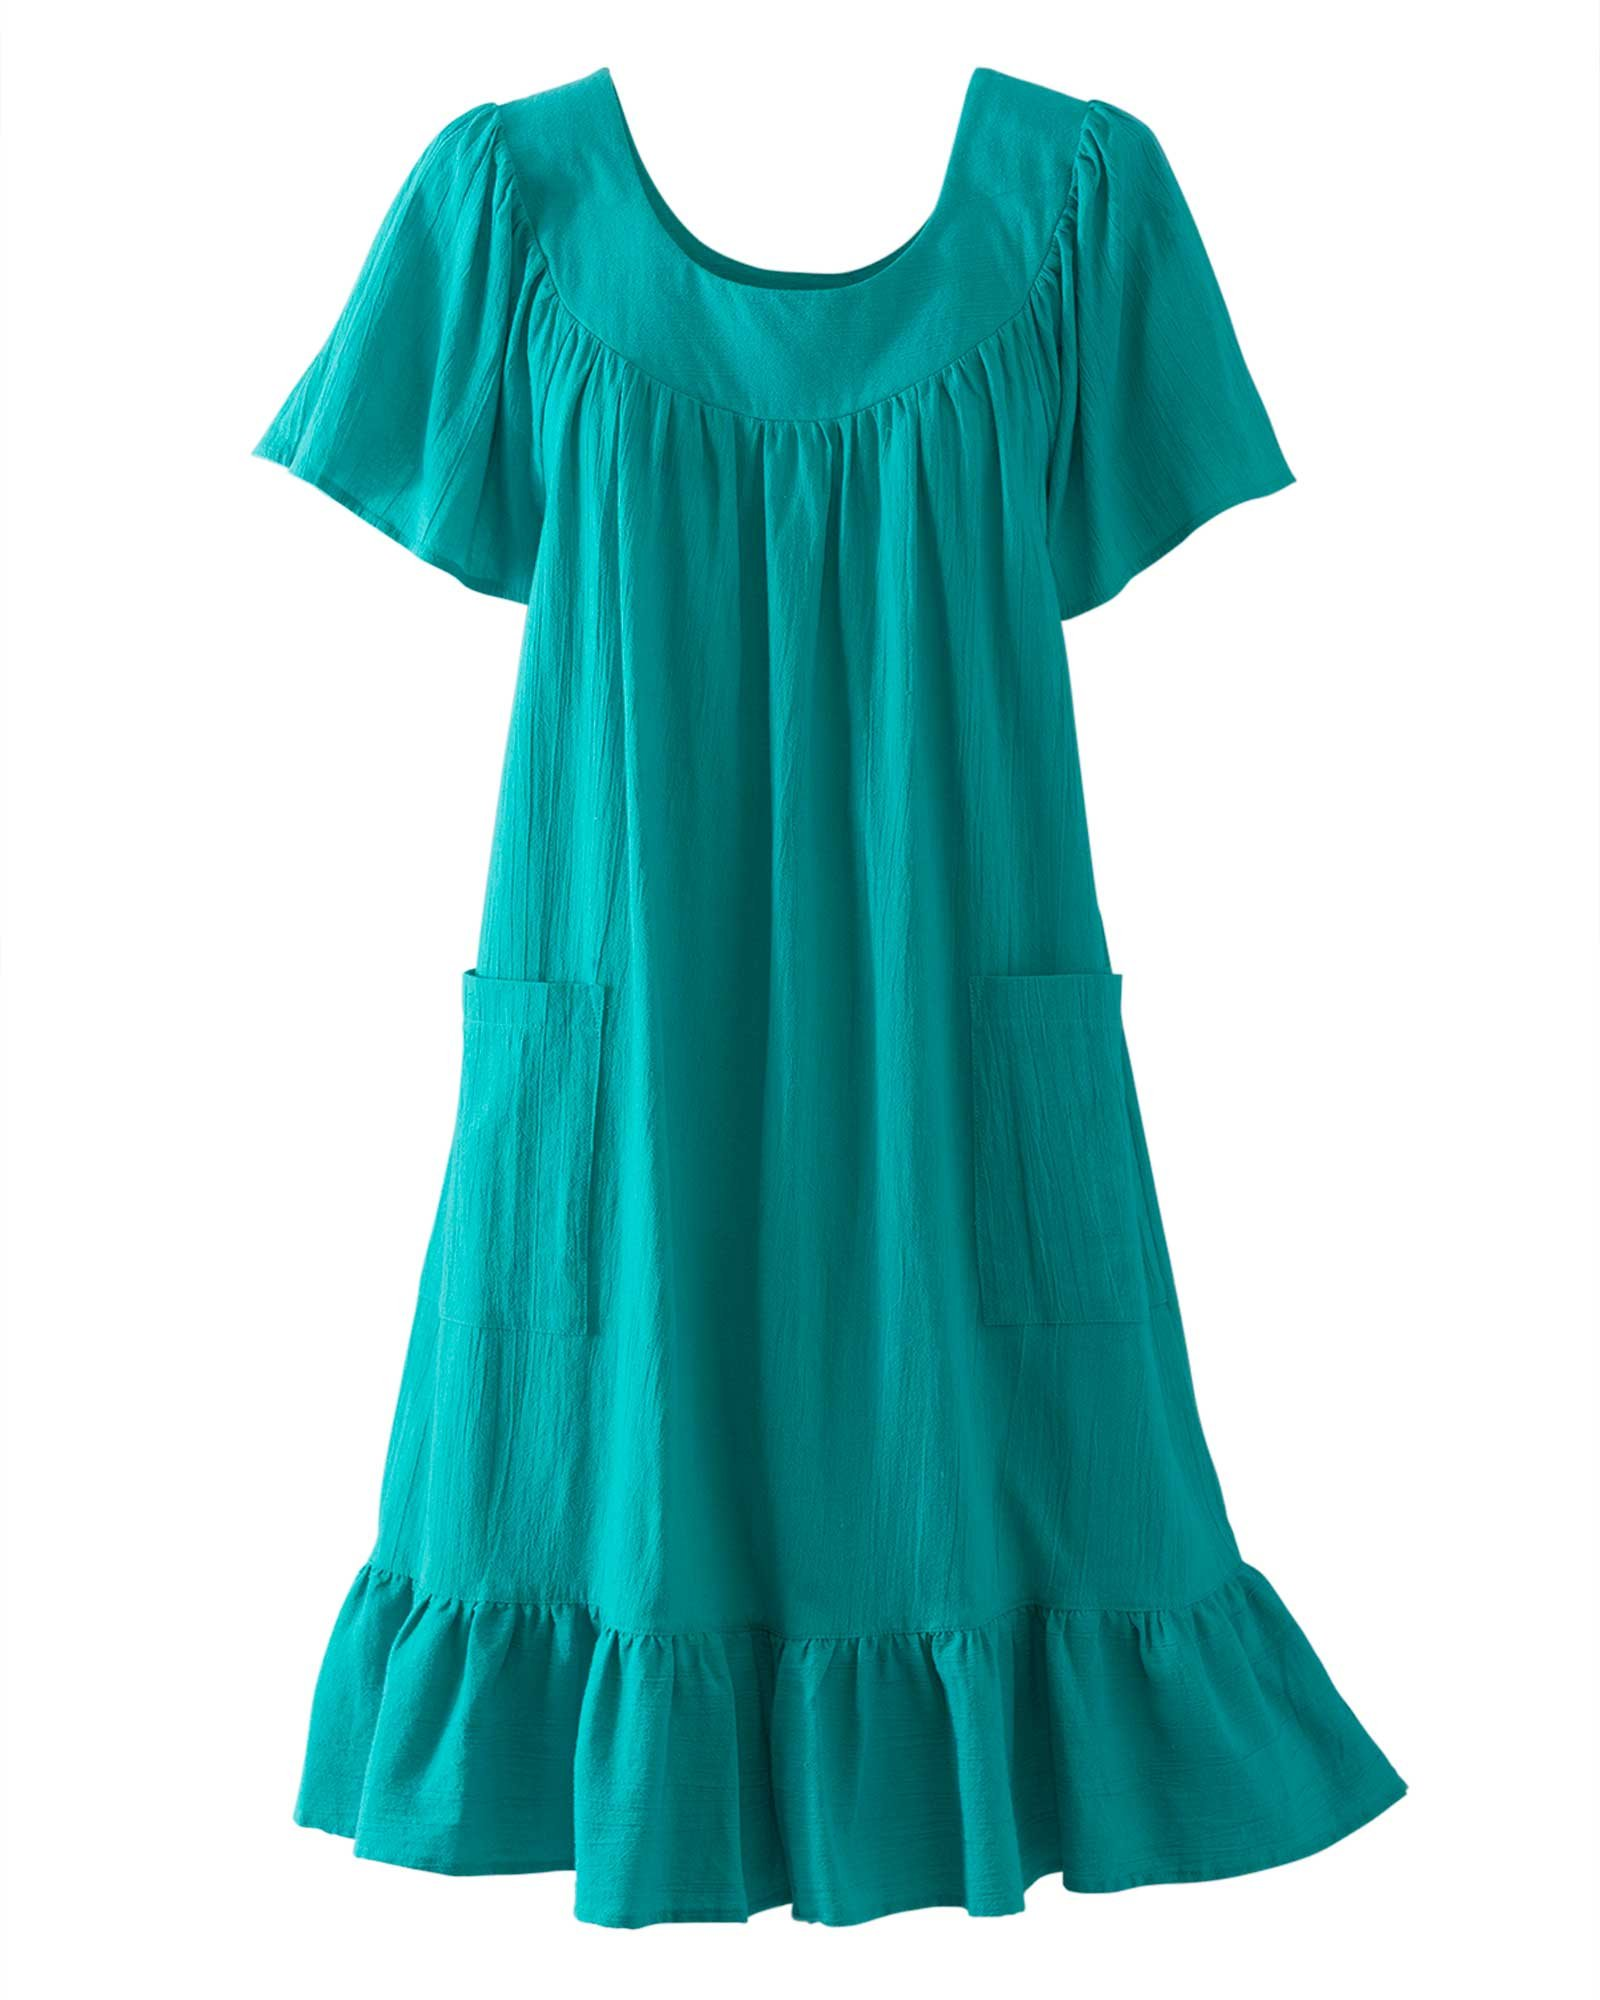 Available at Amazon: National Crinkle Cotton Dress